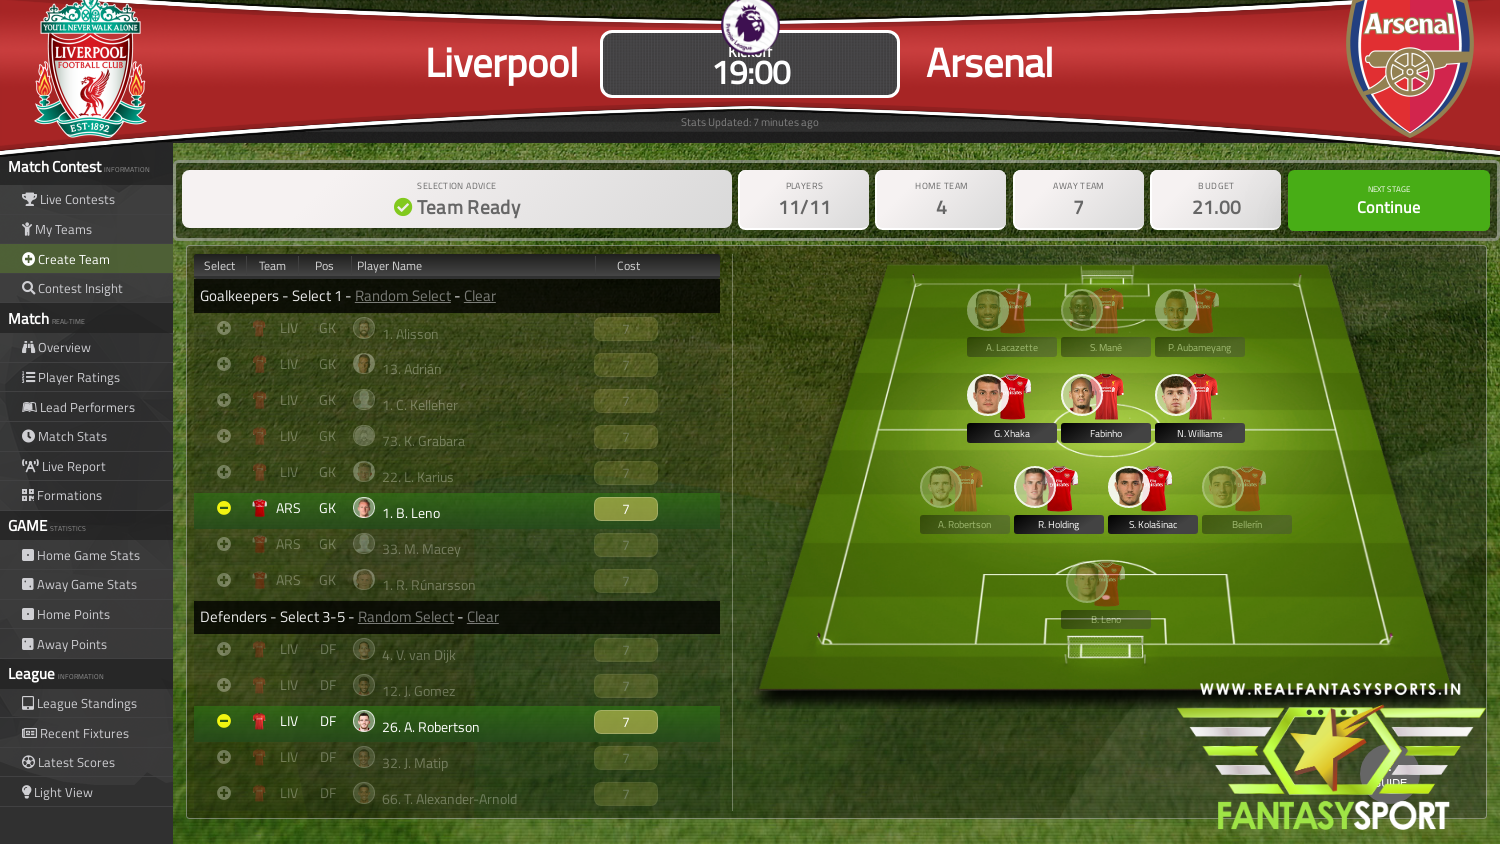 Liverpool vs Arsenal dream11 prediction (28th September 2020)